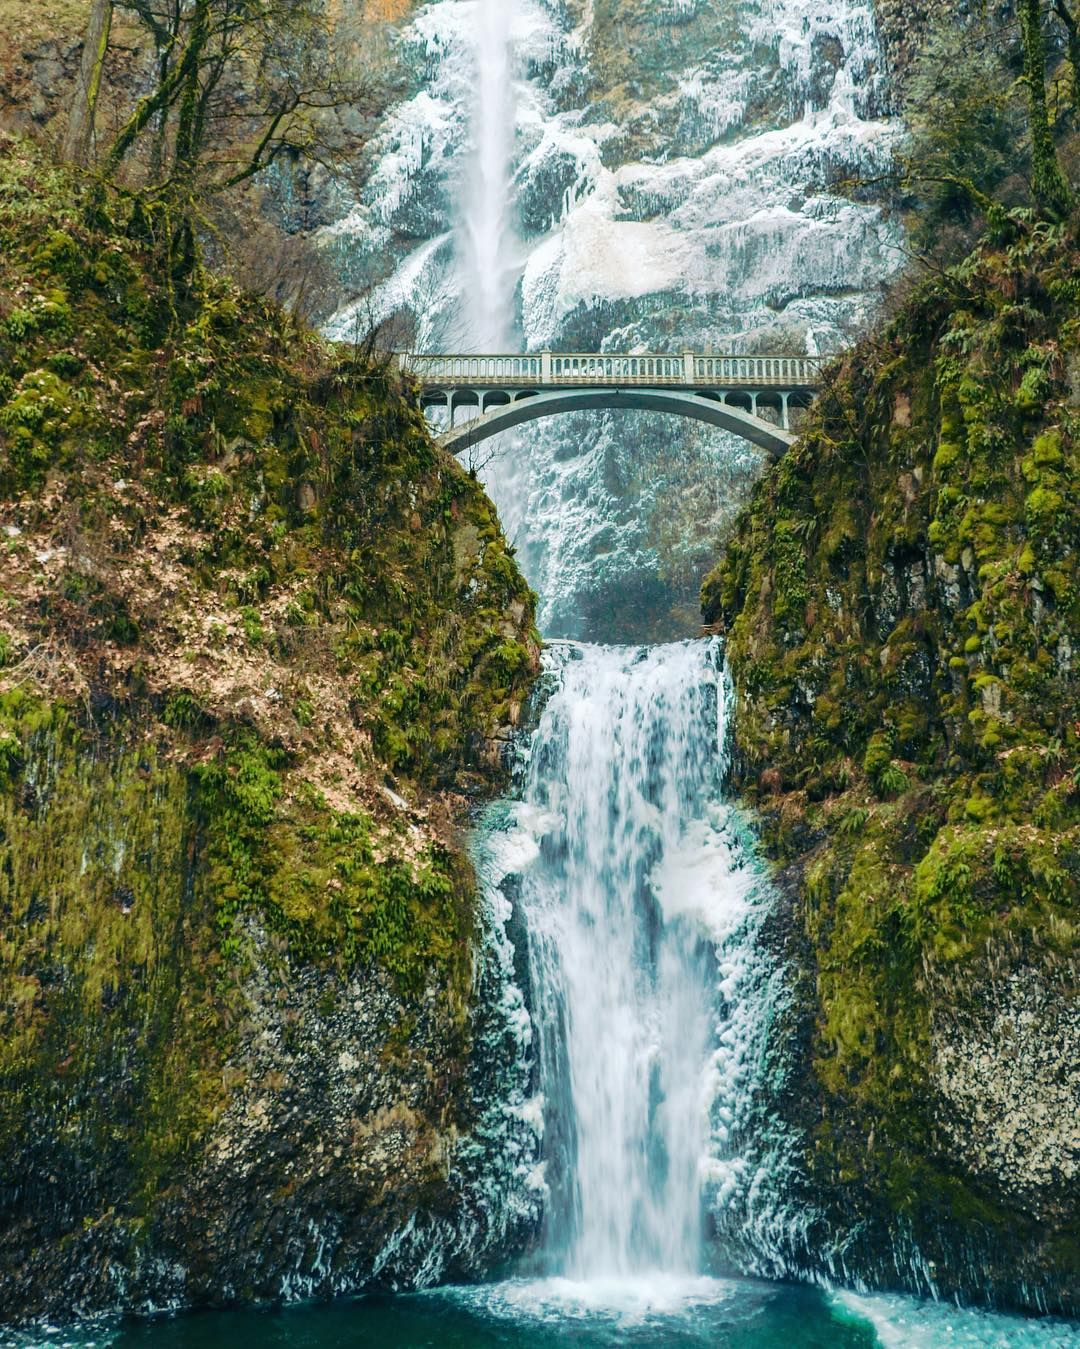 multnomah falls in oregon | 50 places in all 50 states you must see